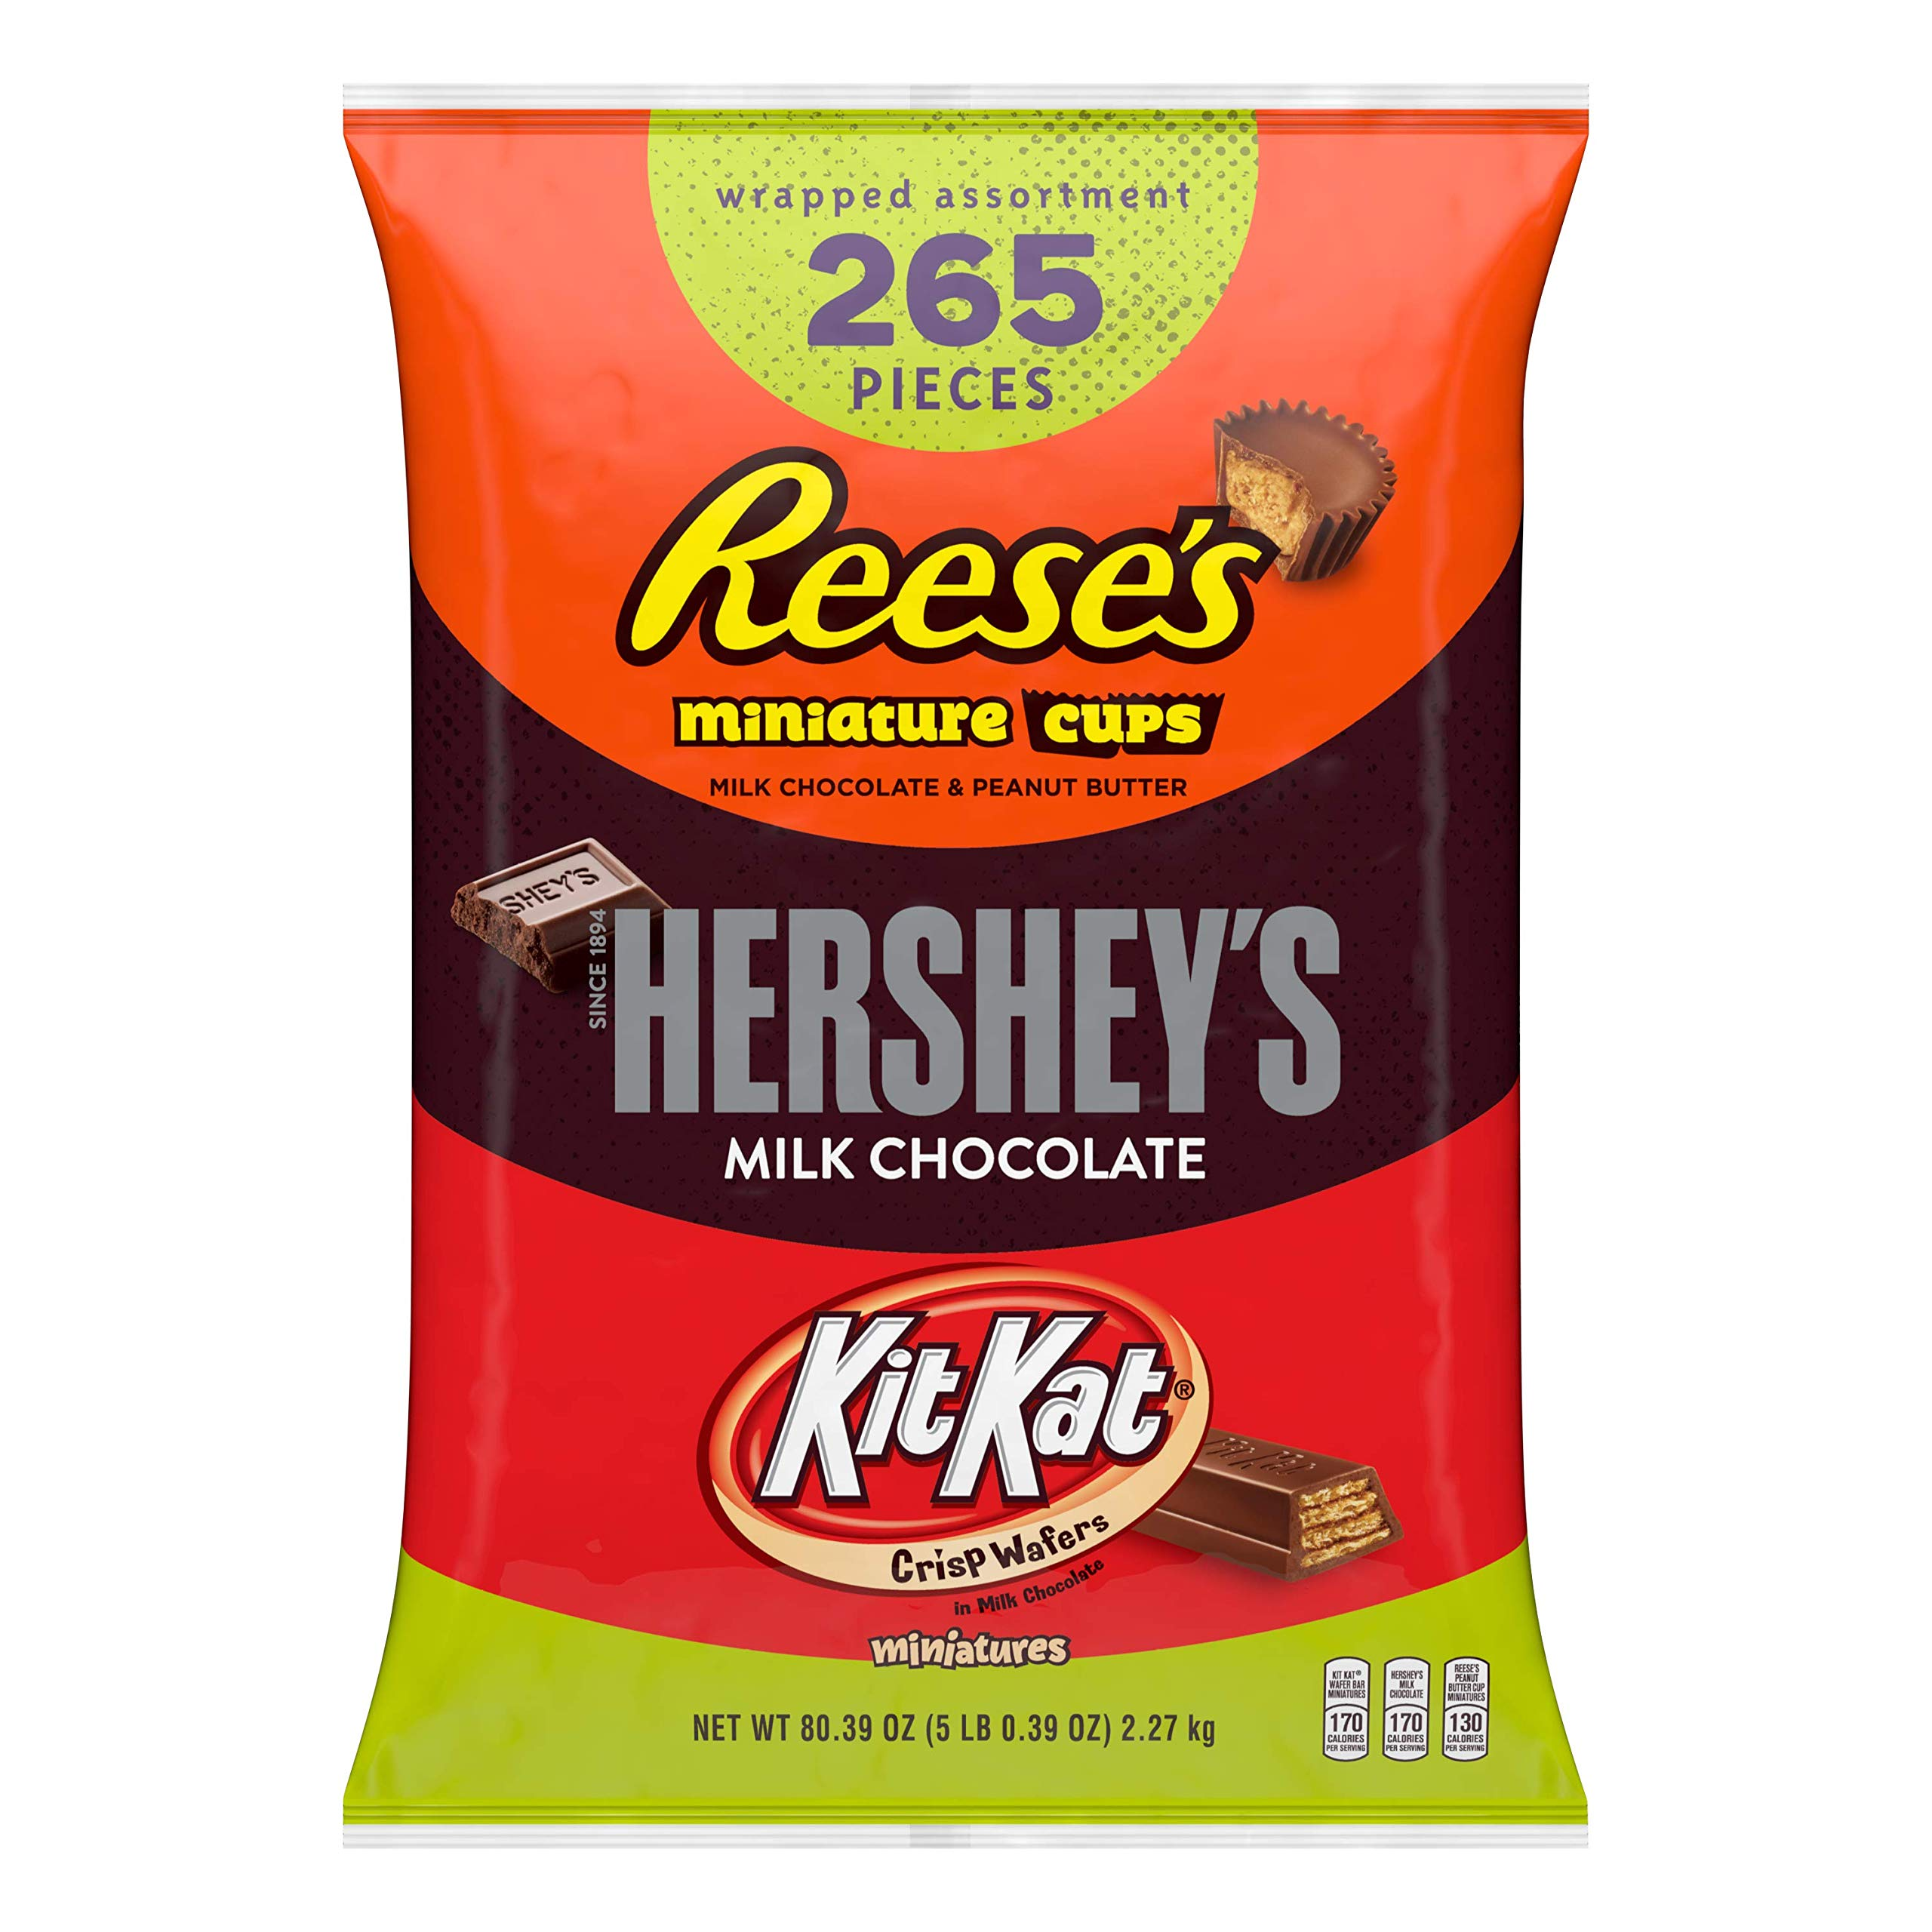 HERSHEY'S Halloween Candy, Variety Mix, Bulk Chocolate Candy , HERSHEY'S, REESE'S, and KIT KAT, 265 Pieces, 5 Pounds by HERSHEY'S